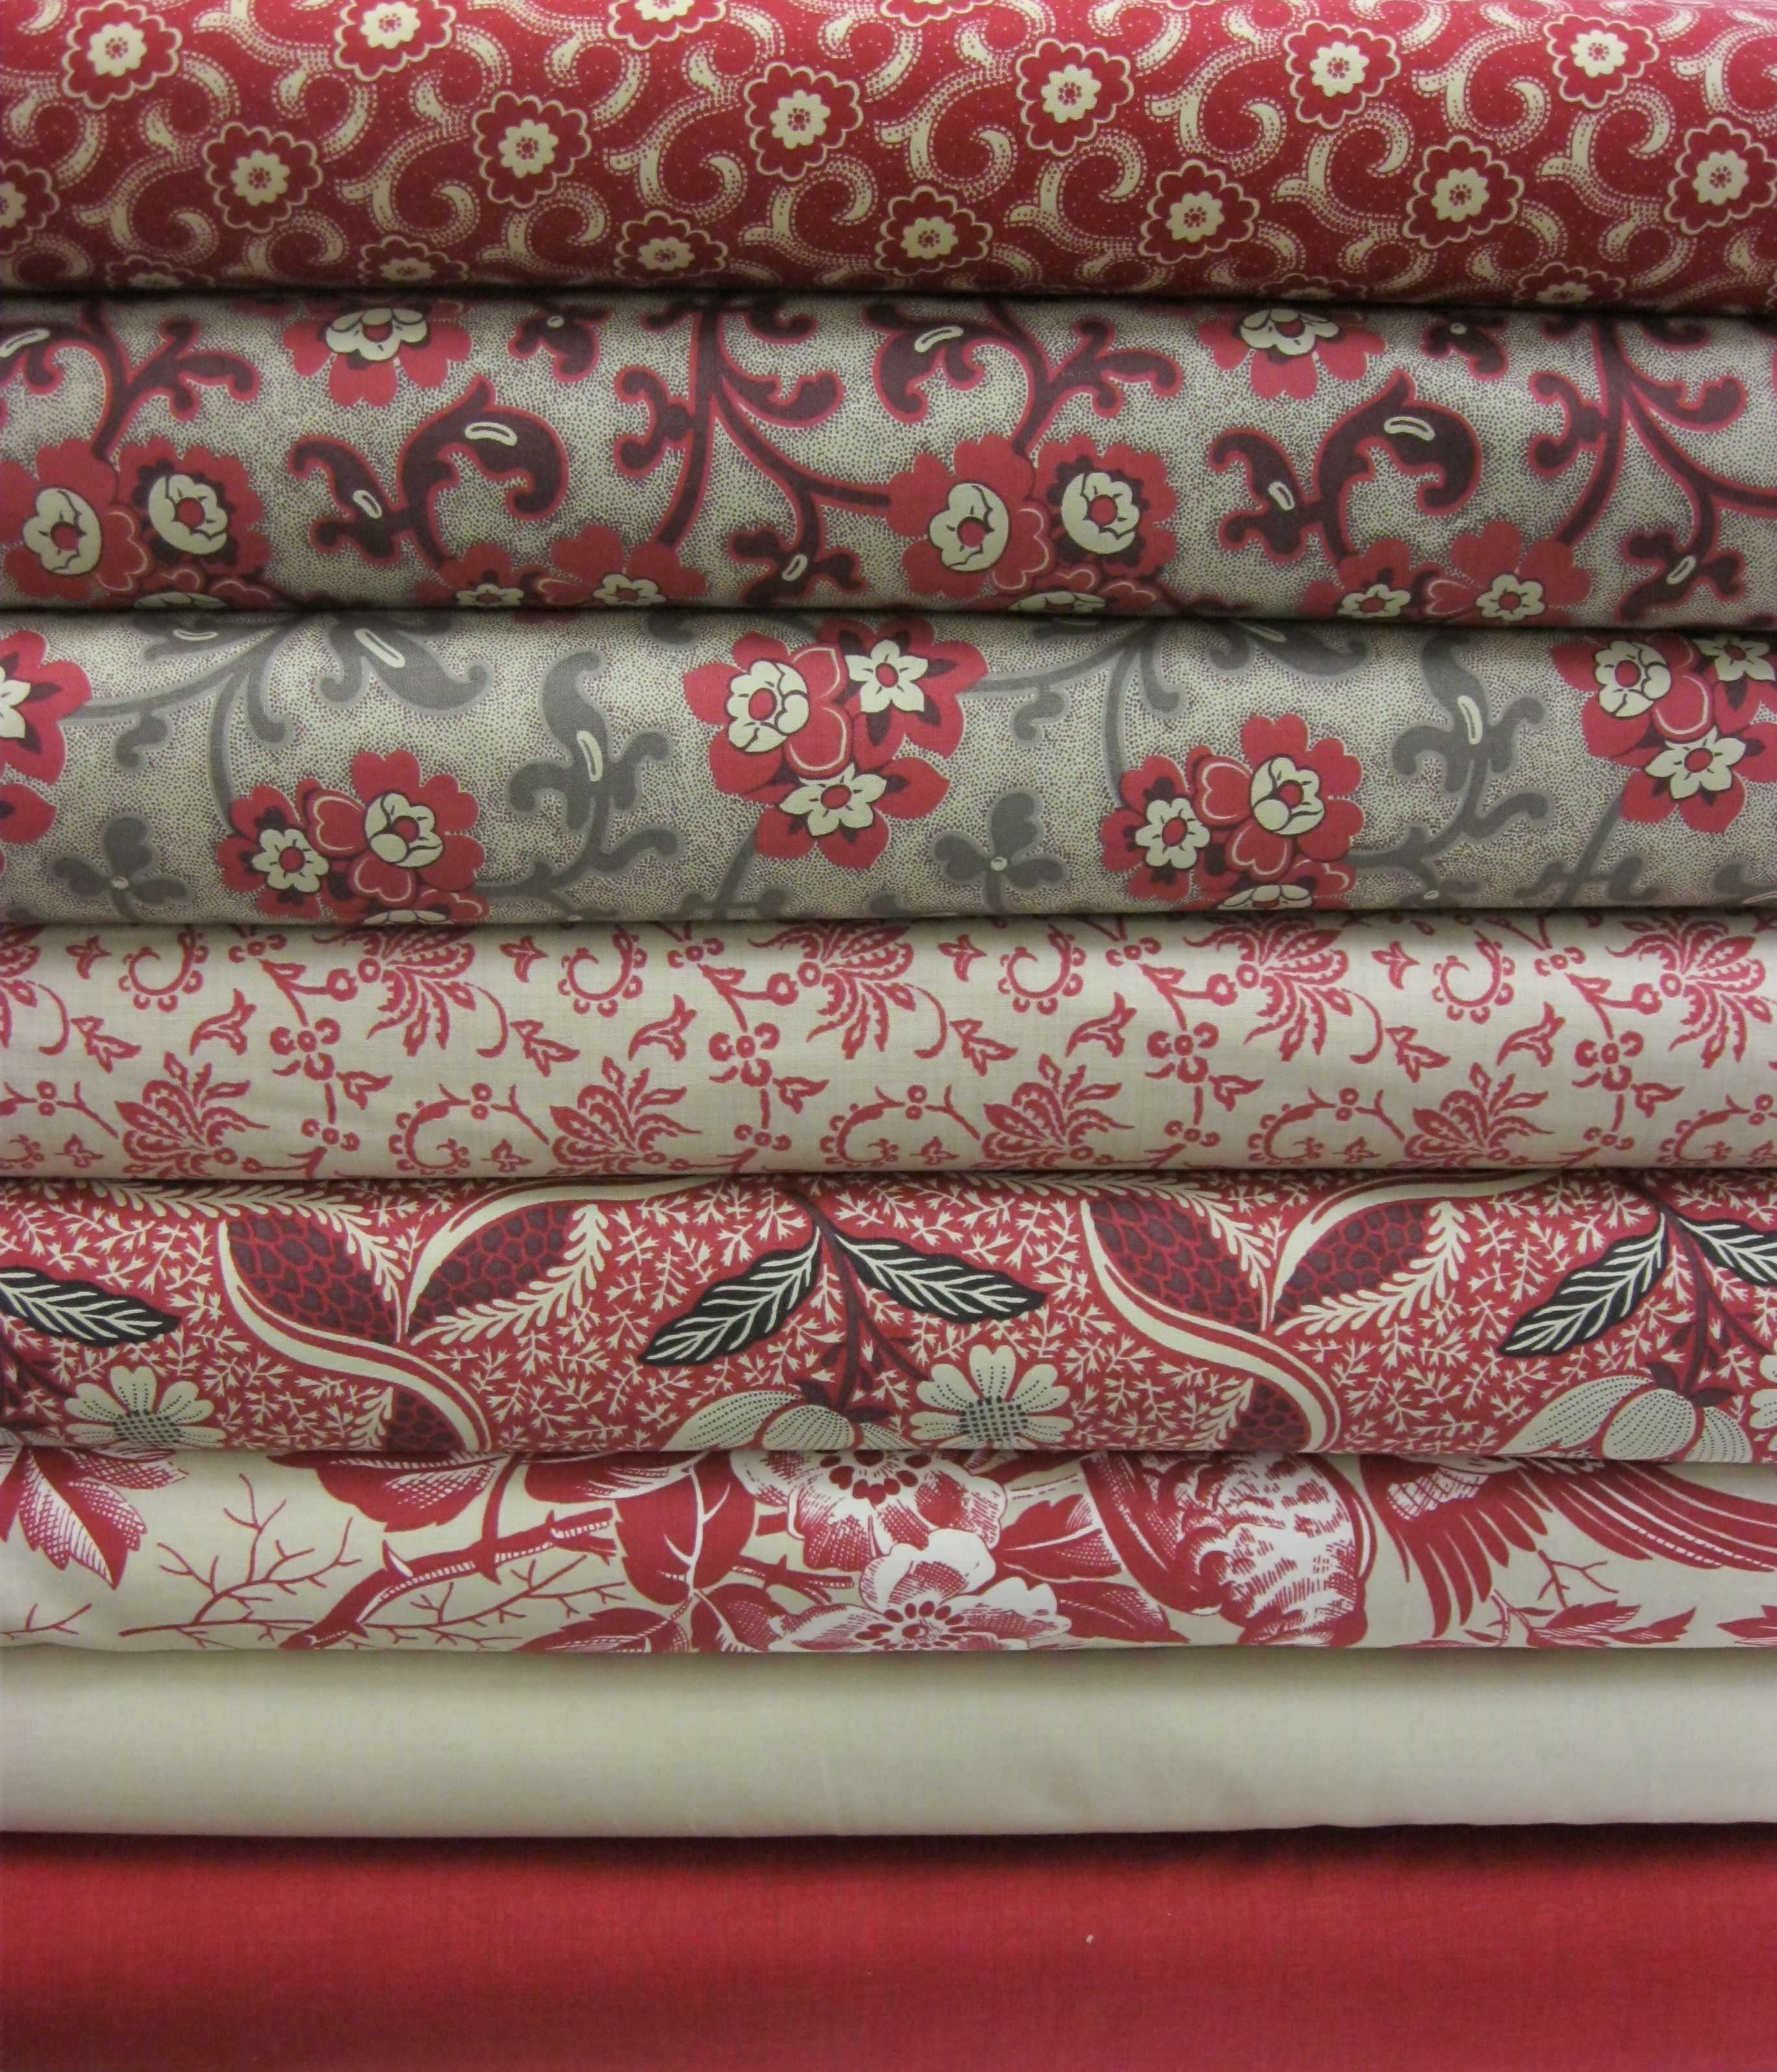 New Chateau Rouge fabrics from French General have arrived at the ... : lincoln ne quilt shops - Adamdwight.com